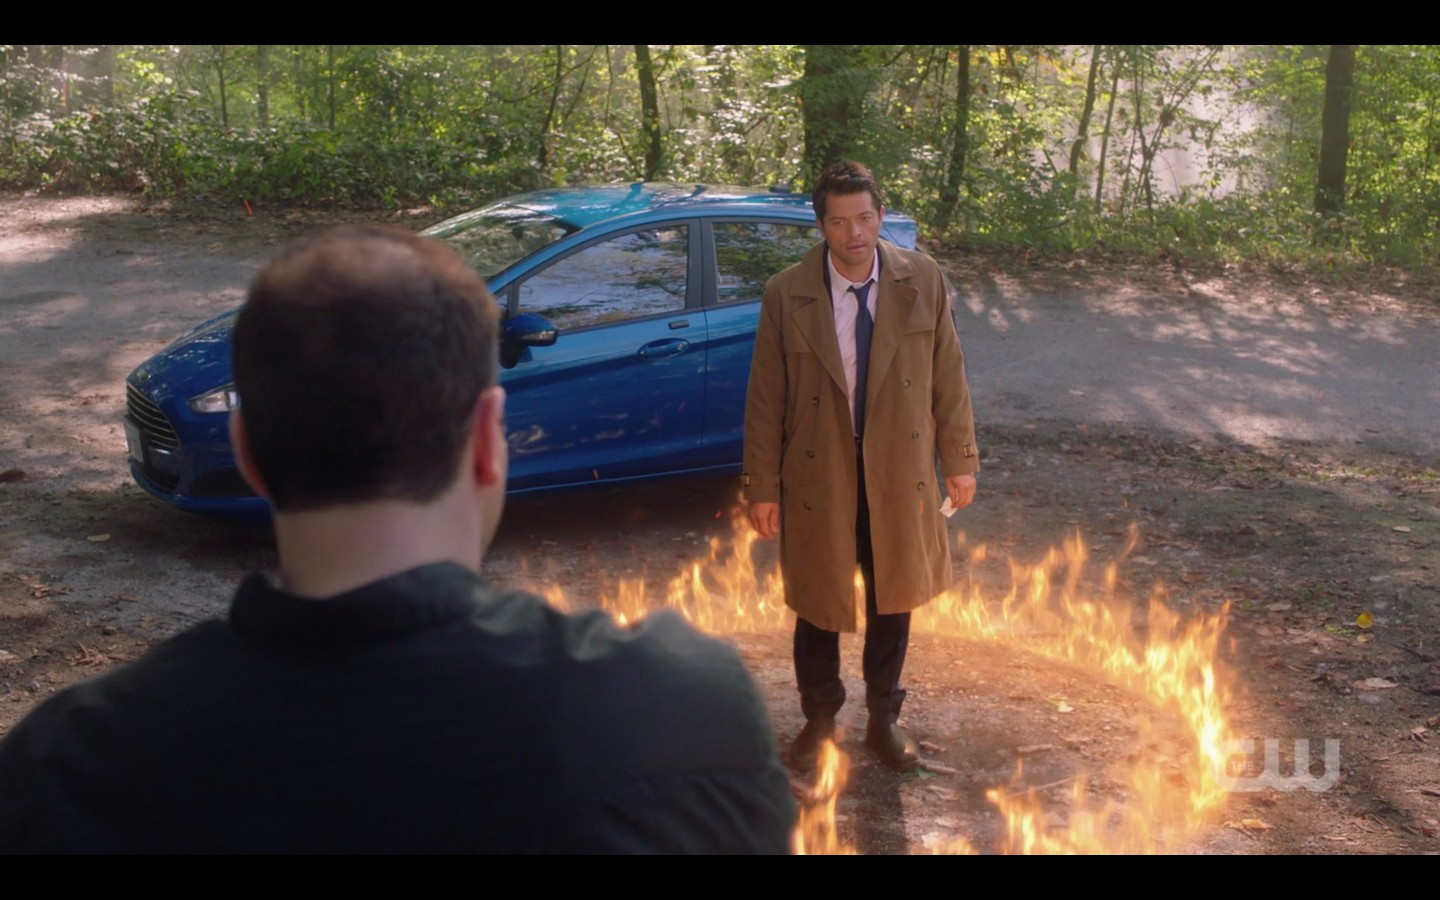 castiel in ring of fire with sergei spn 1407